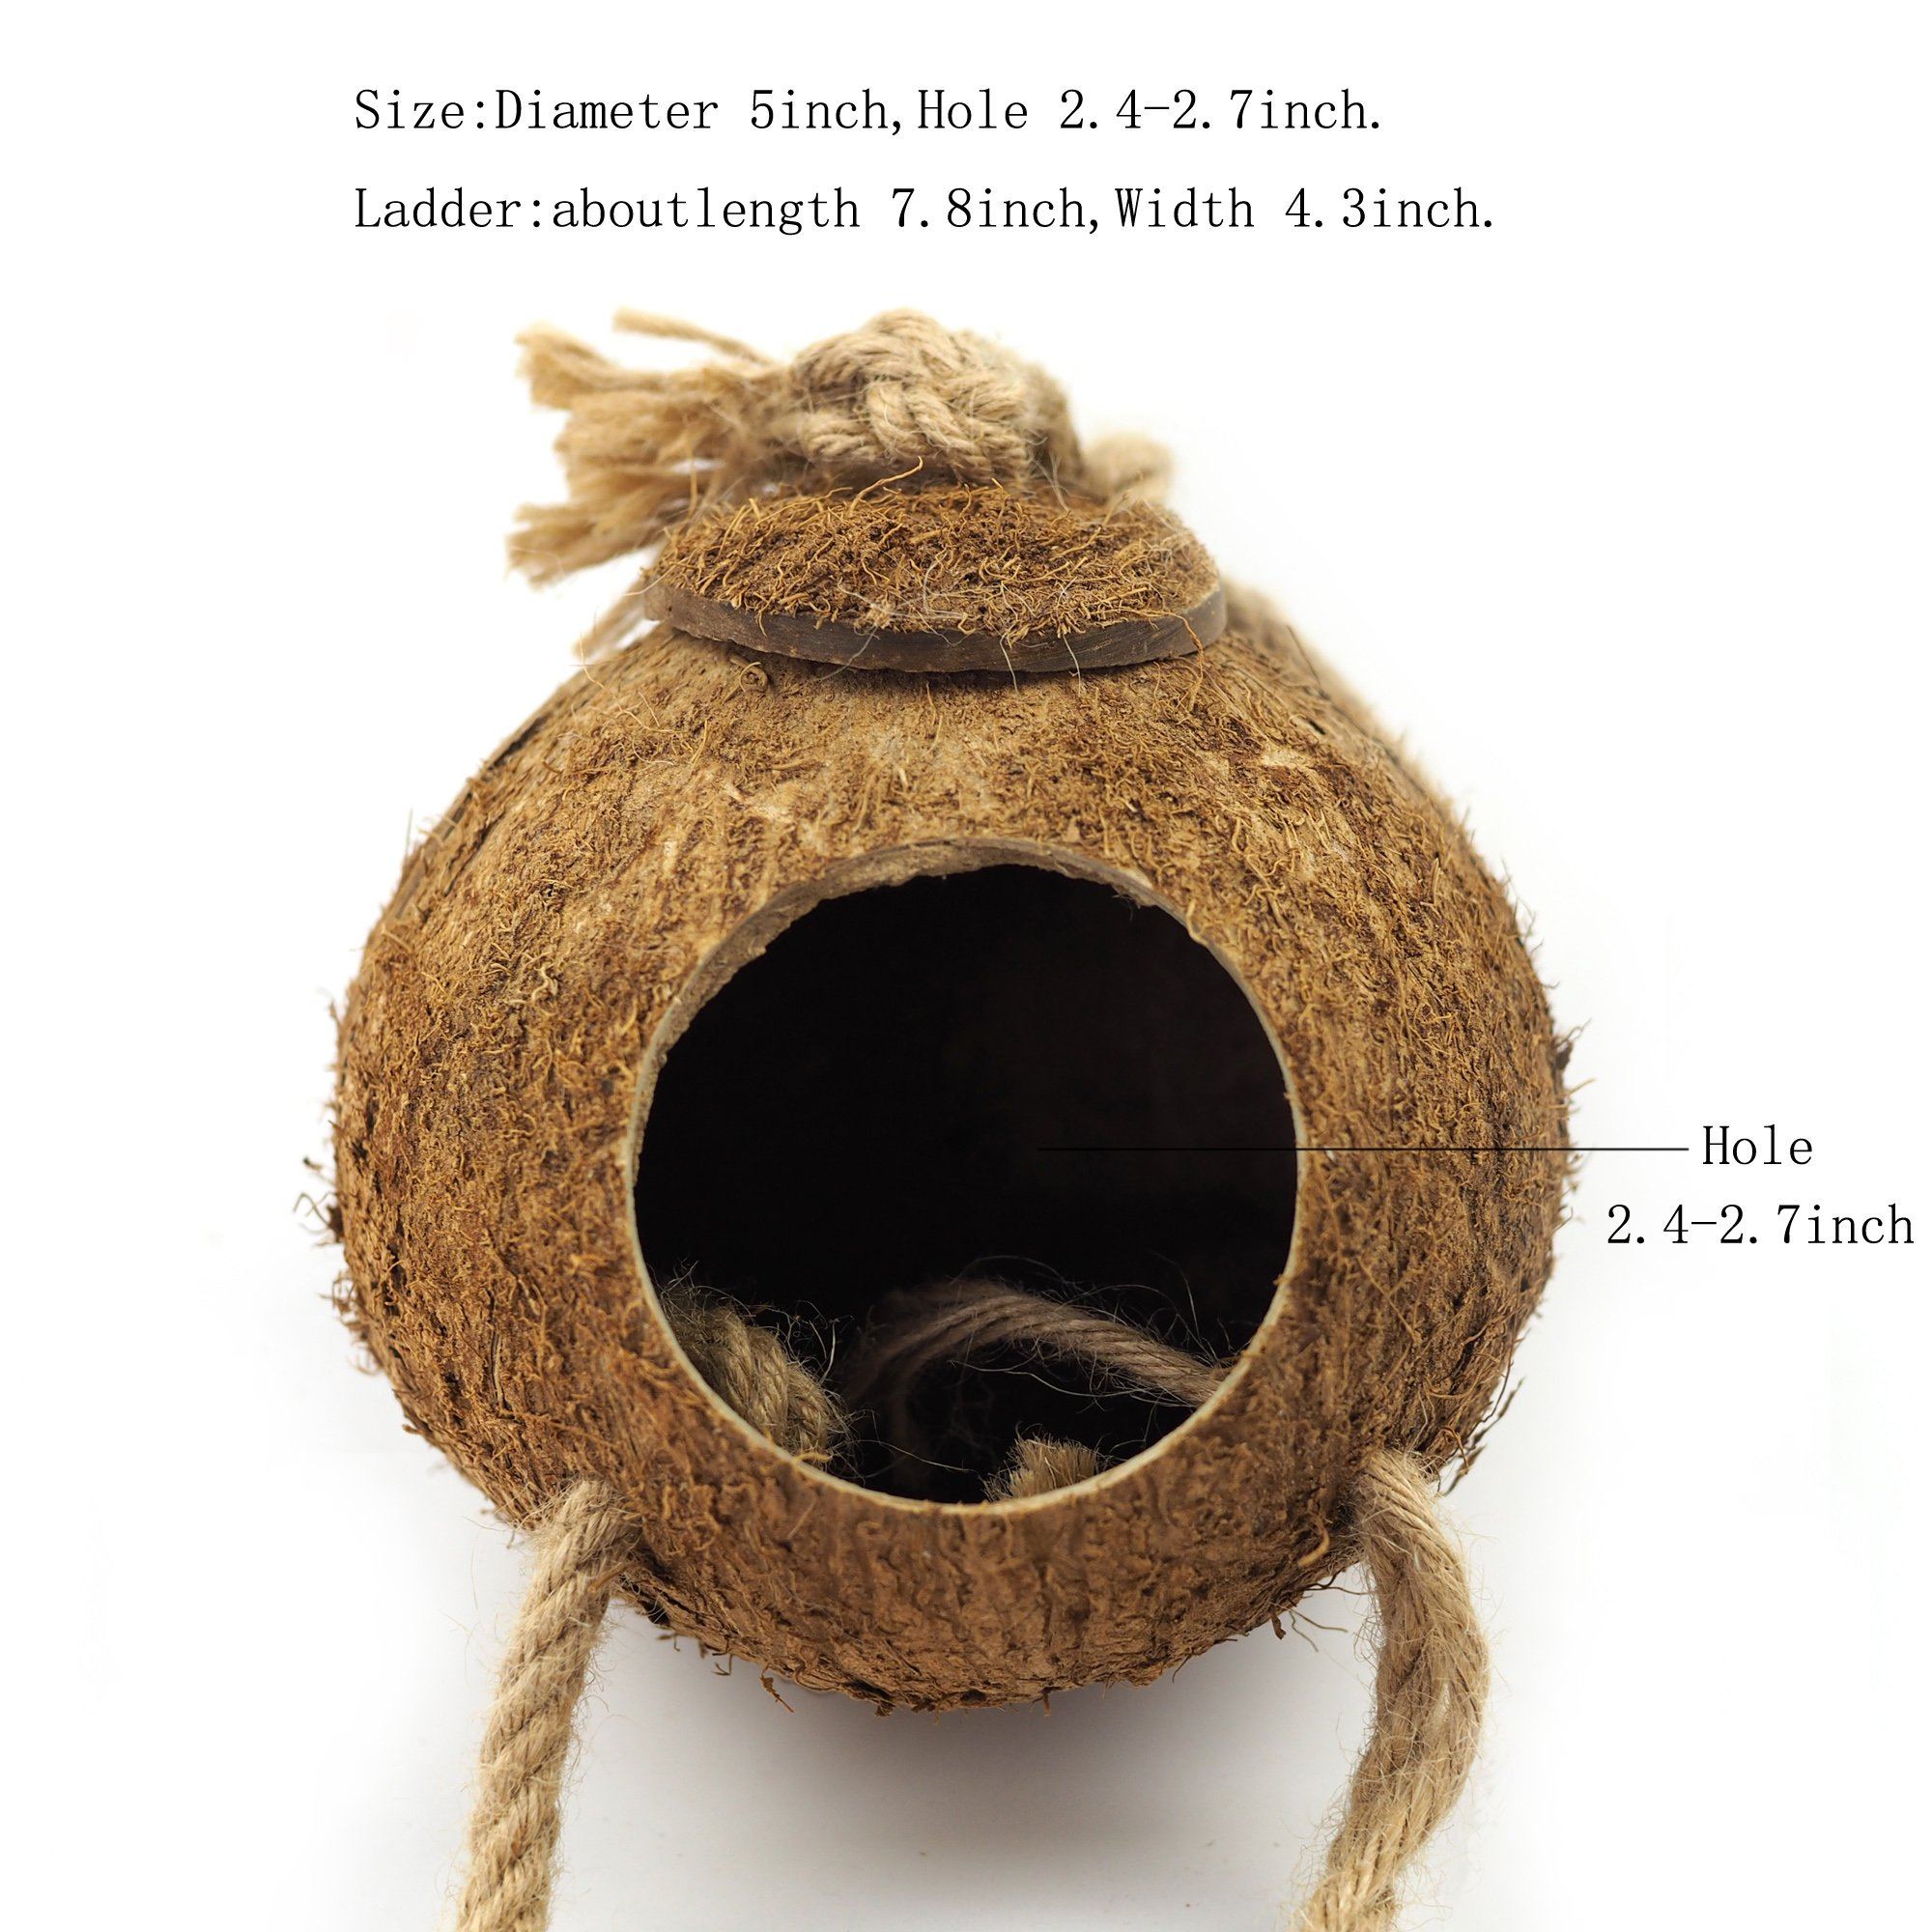 OMEM Coconut Shell Bird House,Hamster Cage and Hideouts with Ladder,Bird Cage Toy by OMEM (Image #2)